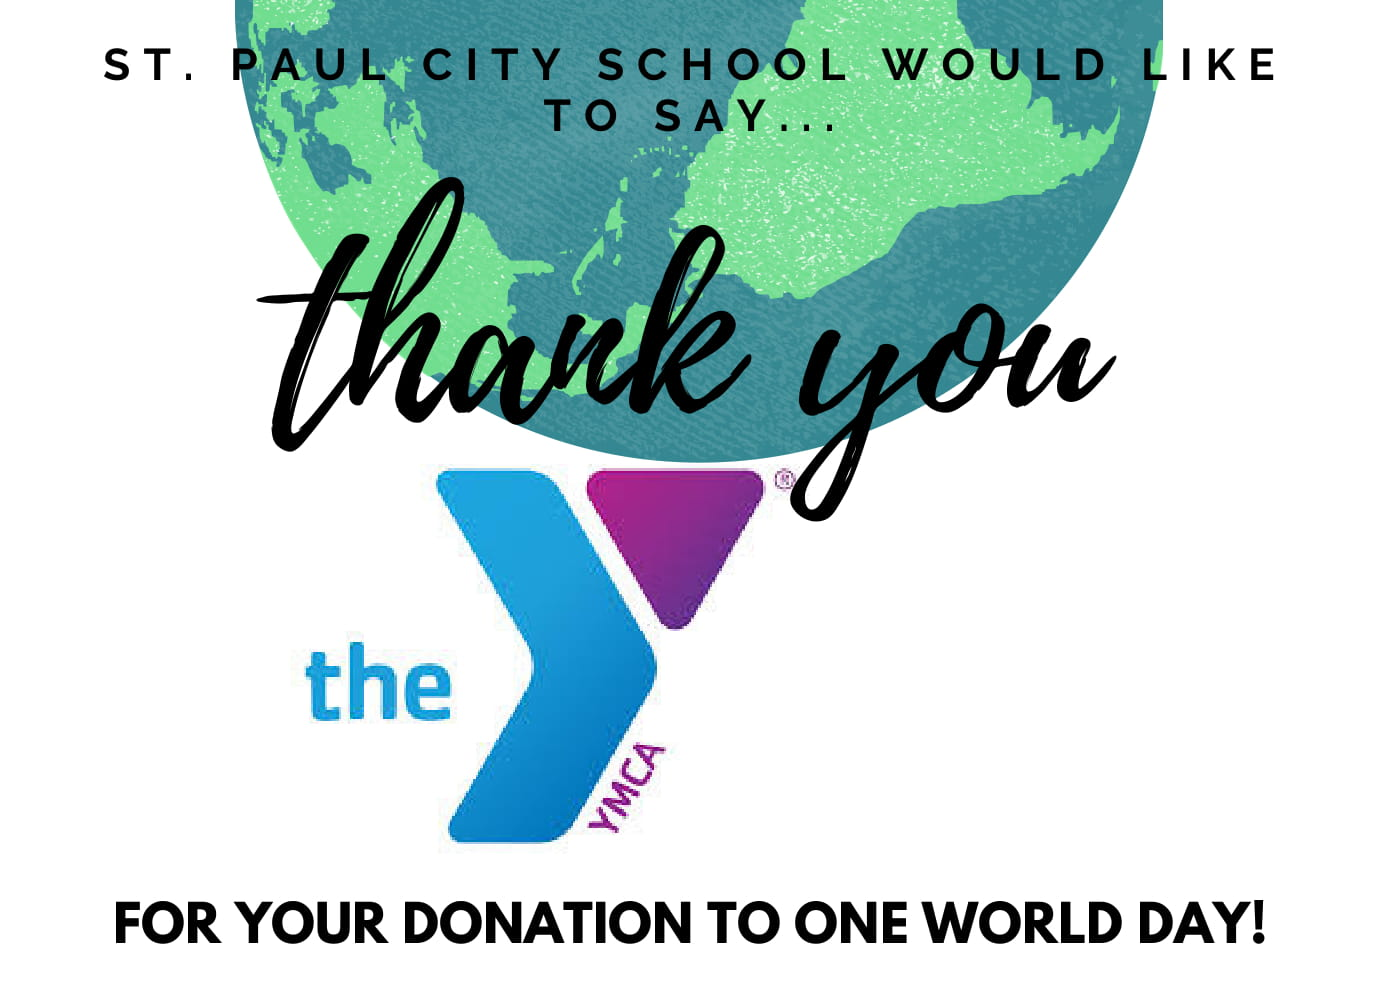 YMCA Thank You-1.jpg